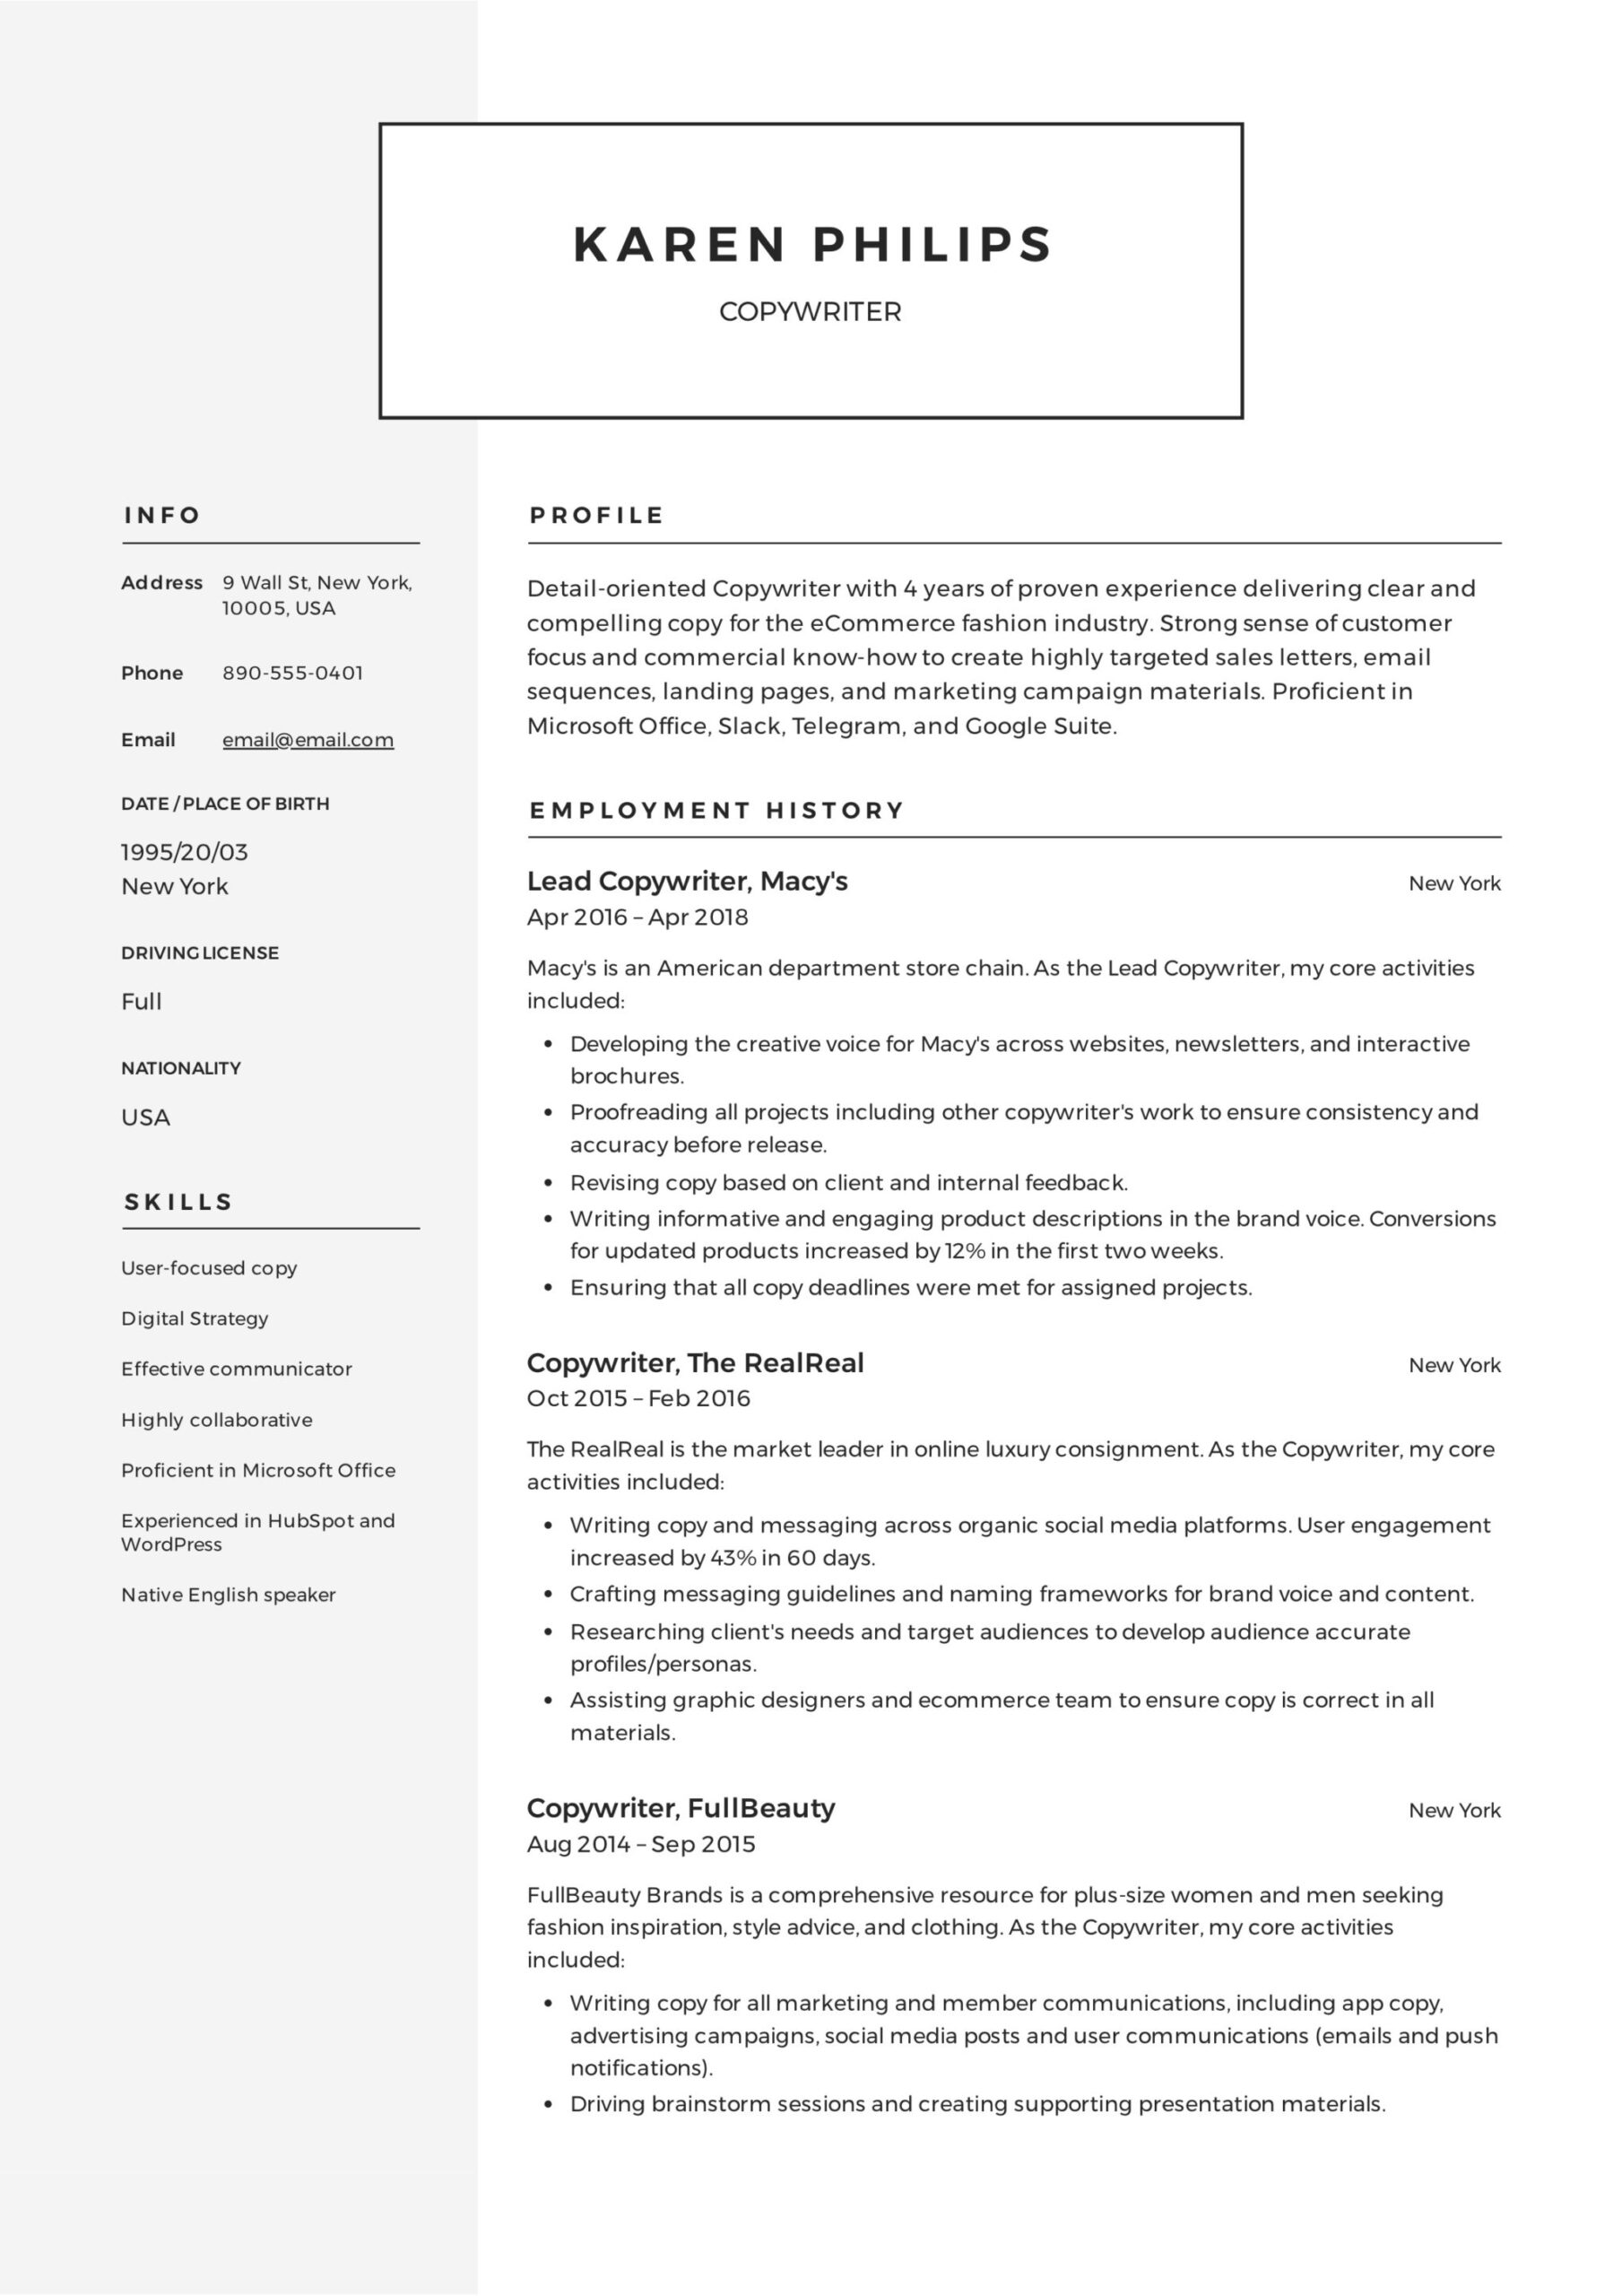 copywriter resume writing guide templates pdf copy of format template on error next vb6 Resume A Copy Of A Resume Format